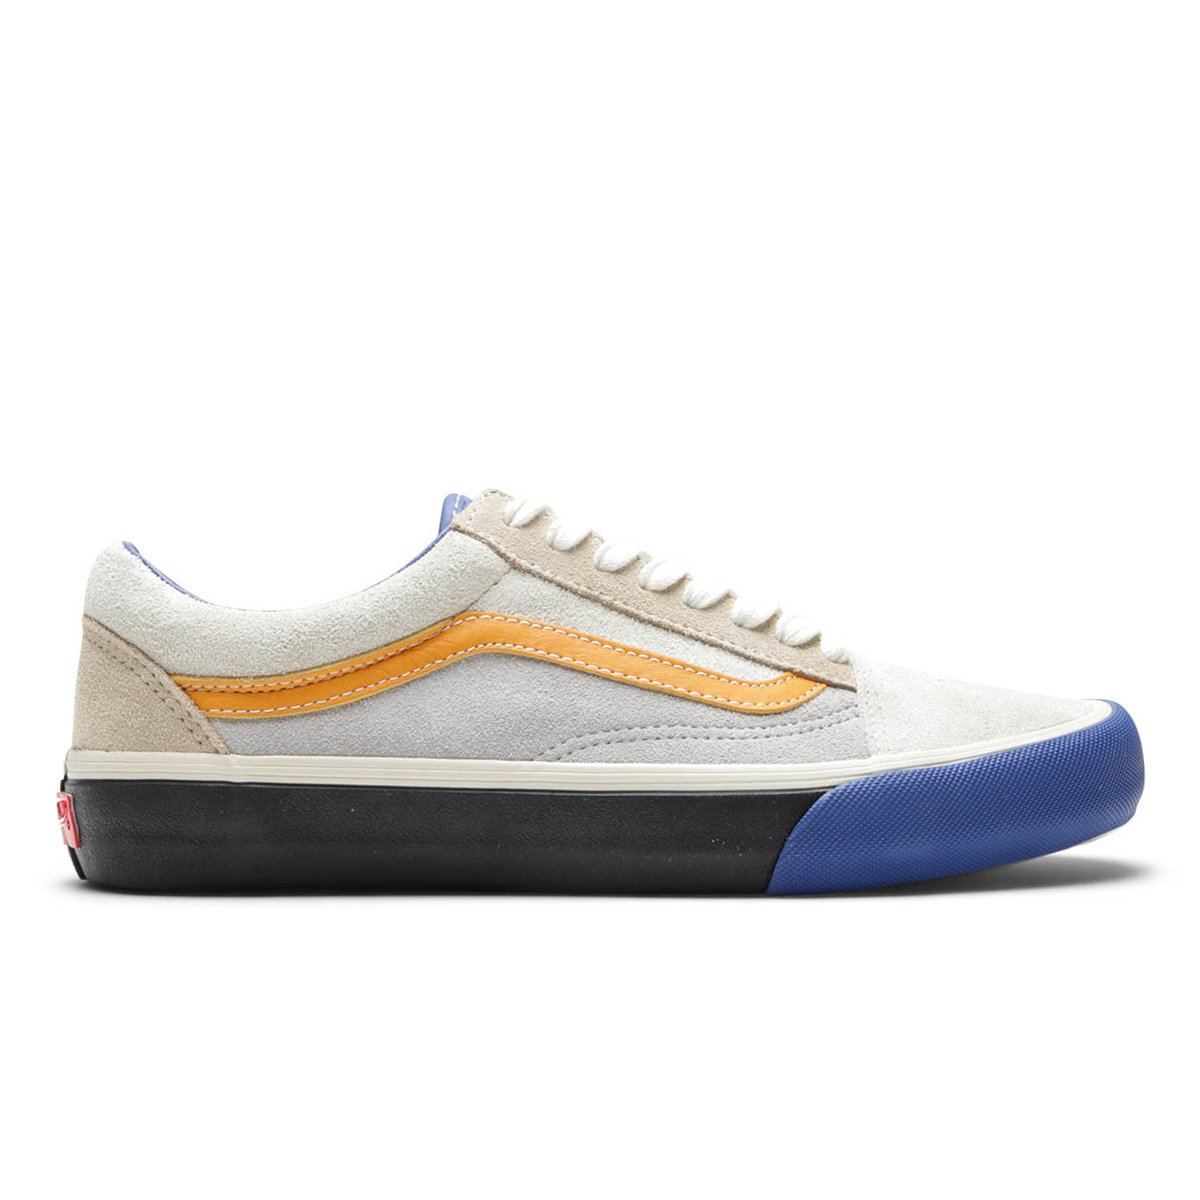 Vault by Vans Shoes OLD SKOOL VLT LX